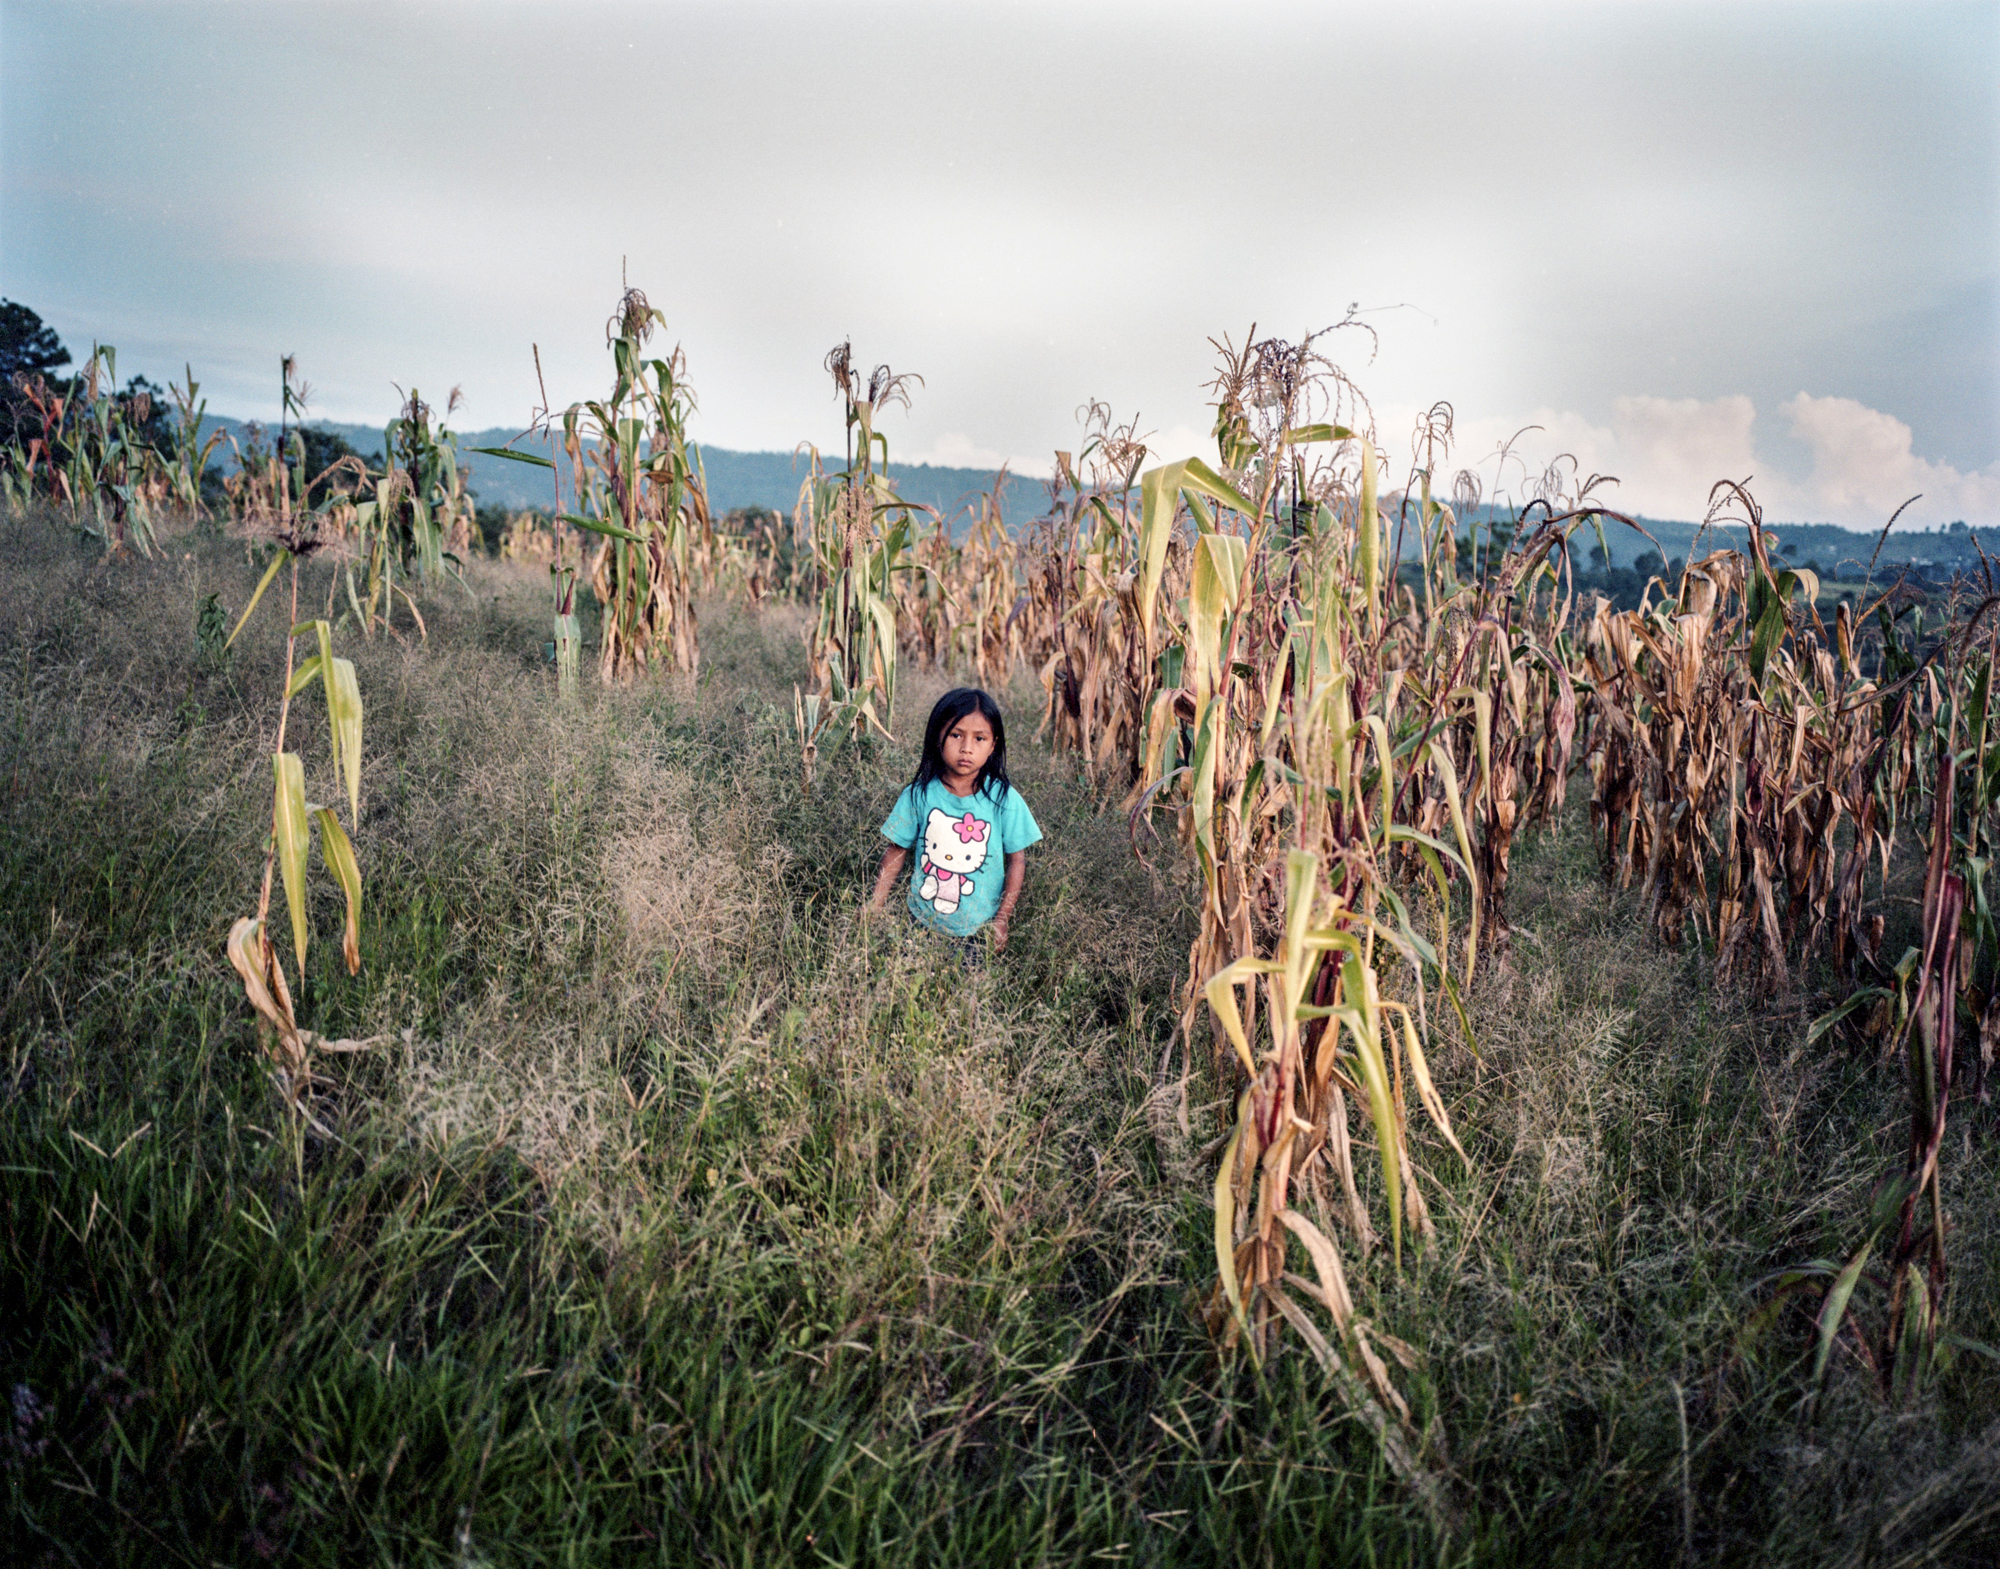 Edilia Varrera Teletor (7), stands on a dried out corn field in Aldea Las Rosas, QuichŽ, Guatemala. She is malnourished and so is her two-year old sister. The family lacks access to land so they have to buy everything they eat at the local market. They usually eat tortillas, salt and beans. Photo: Jesper Klemedsson / Kontinent